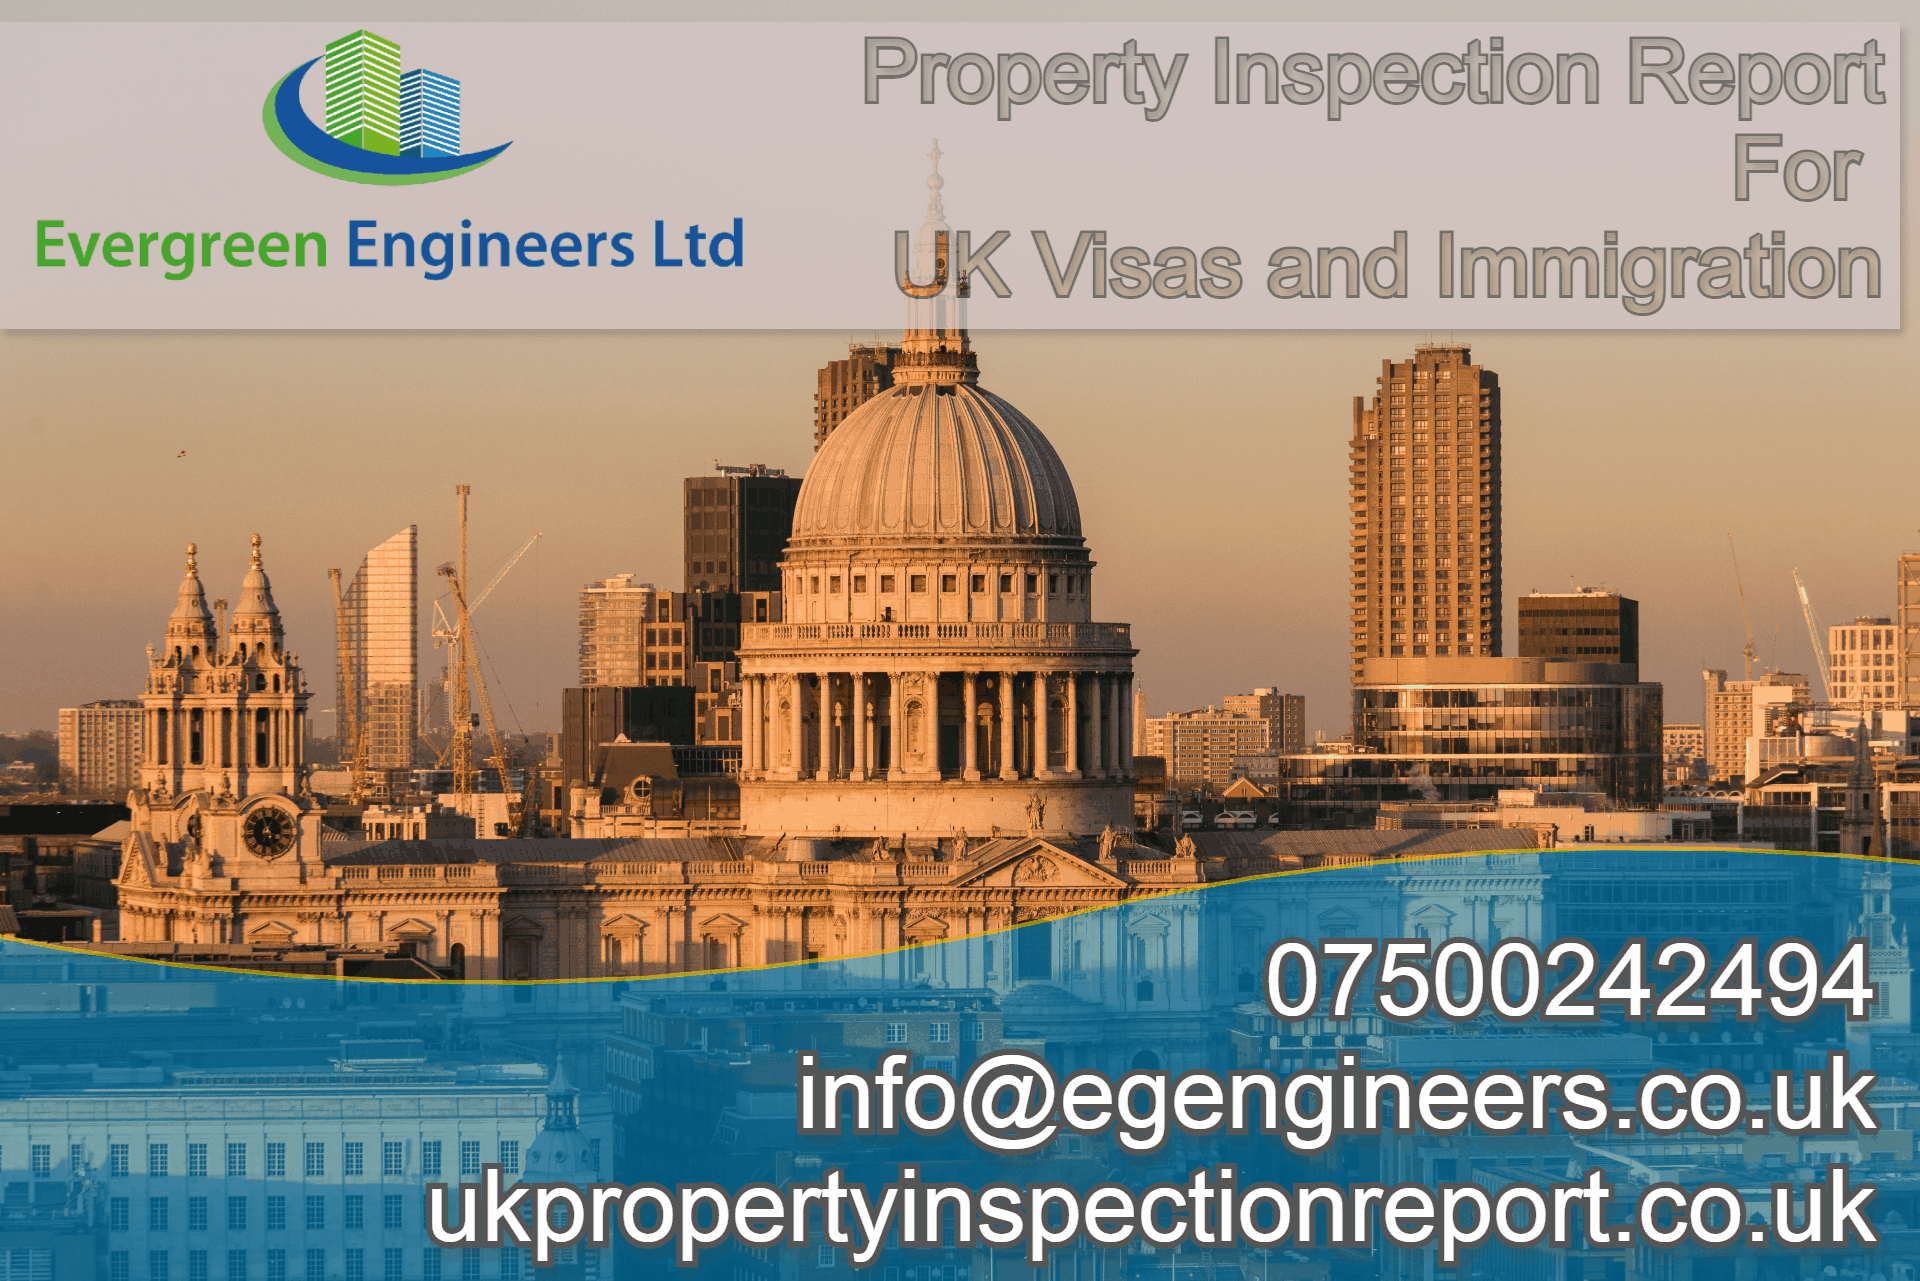 Property inspection Report North London for UK visas and Immigration